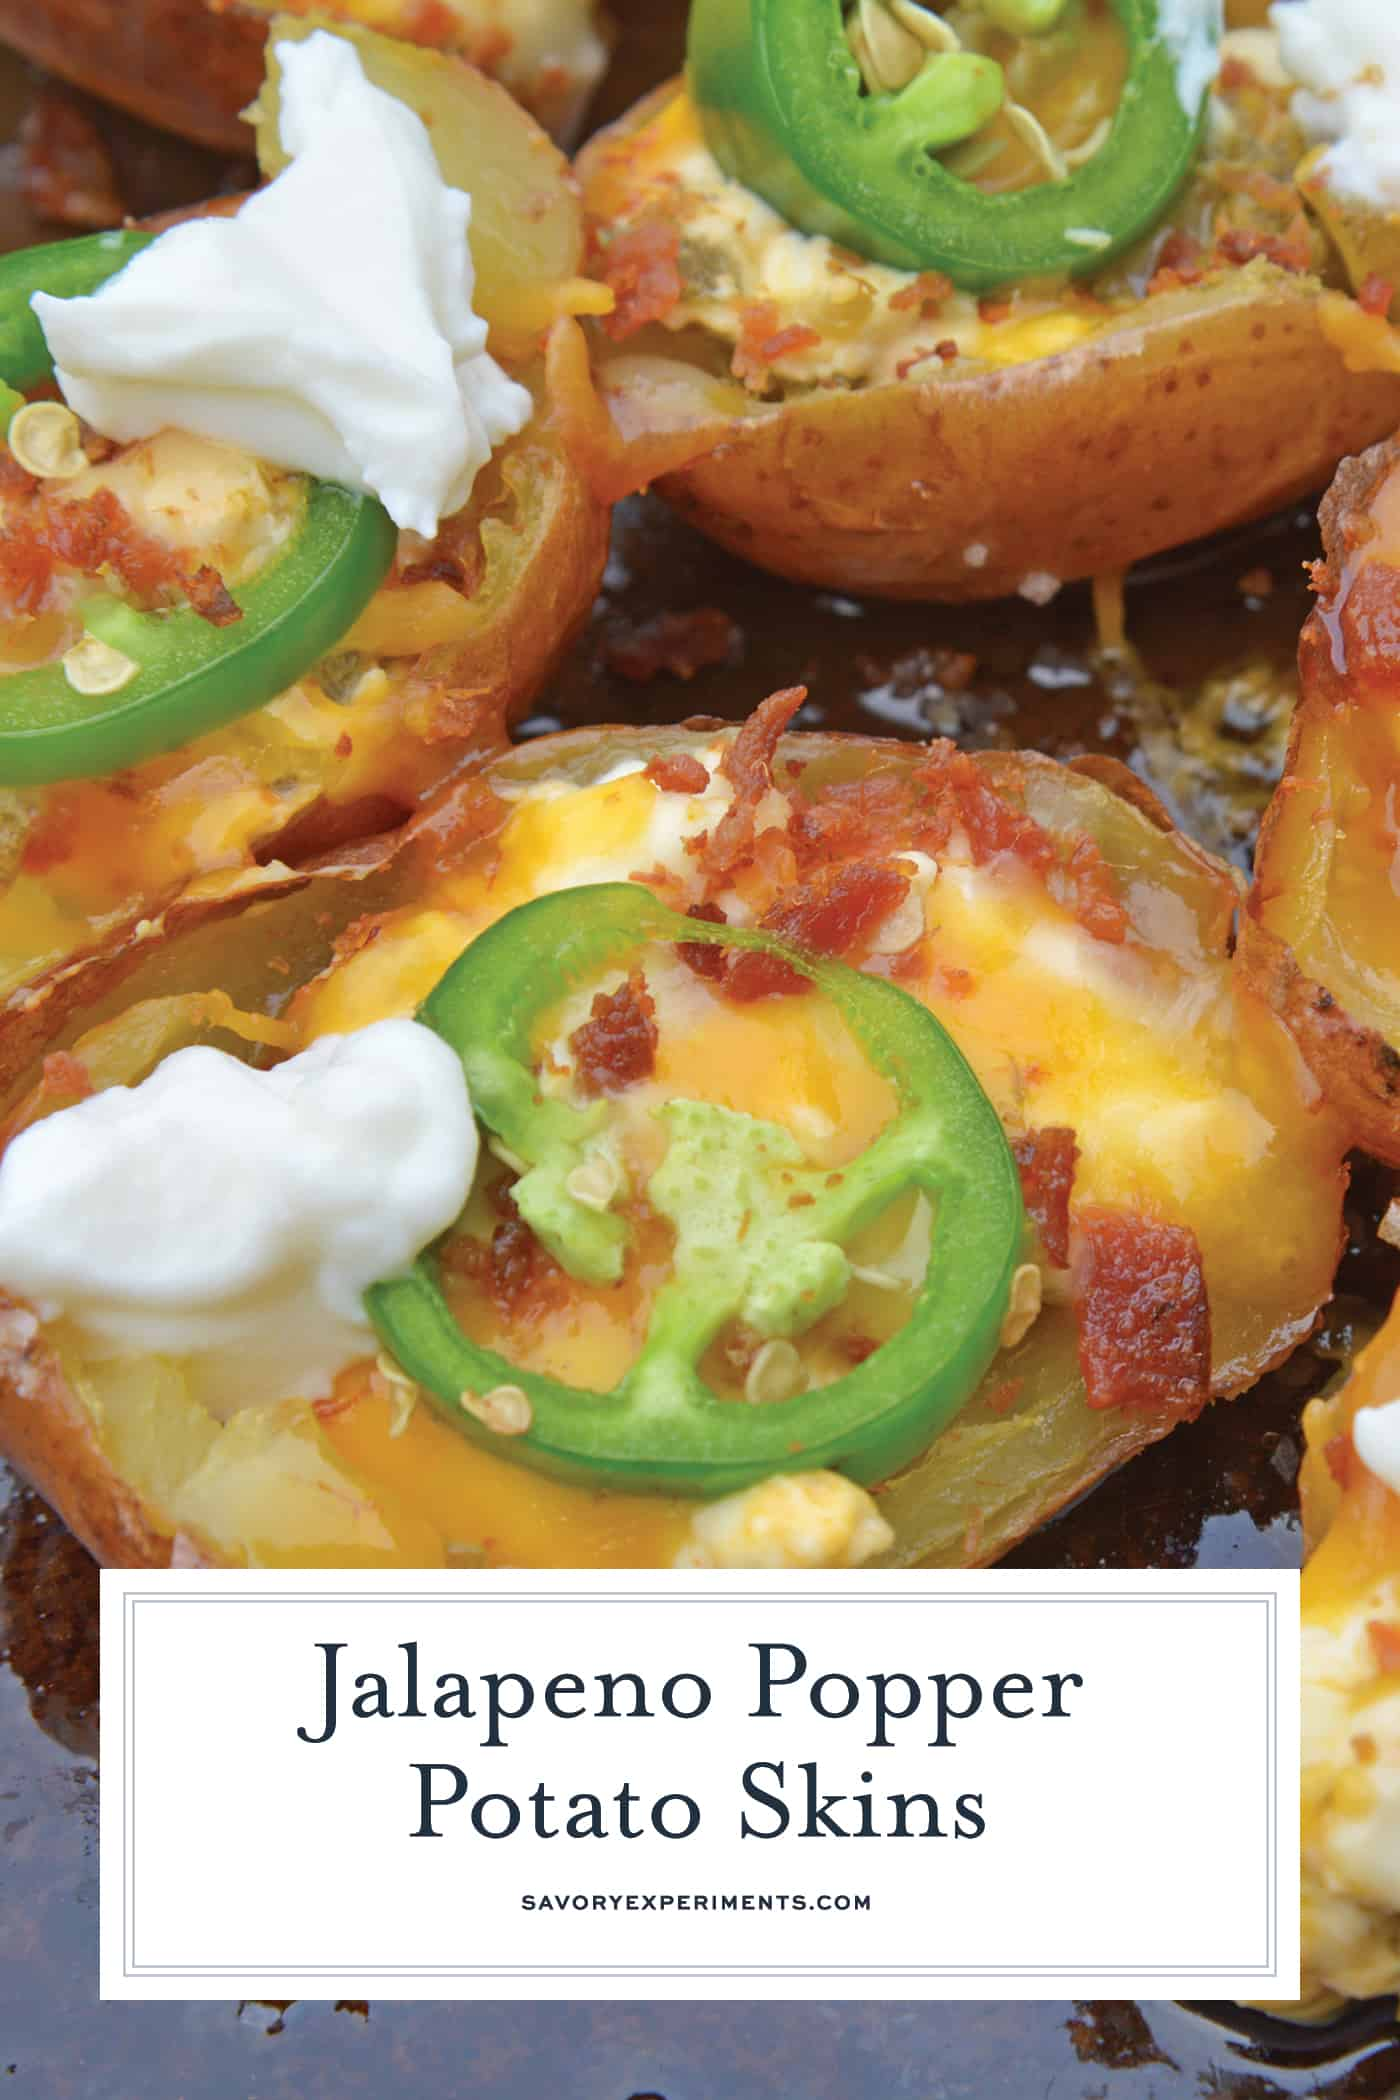 Jalapeno Popper Potato Skins are bite-sized potatoes filled with 3 types of cheese, fresh jalapenos, bacon and cooled off with sour cream. Perfect for a snack or party appetizer! #potatoskins #jalapenopoppers www.savoryexperiments.com